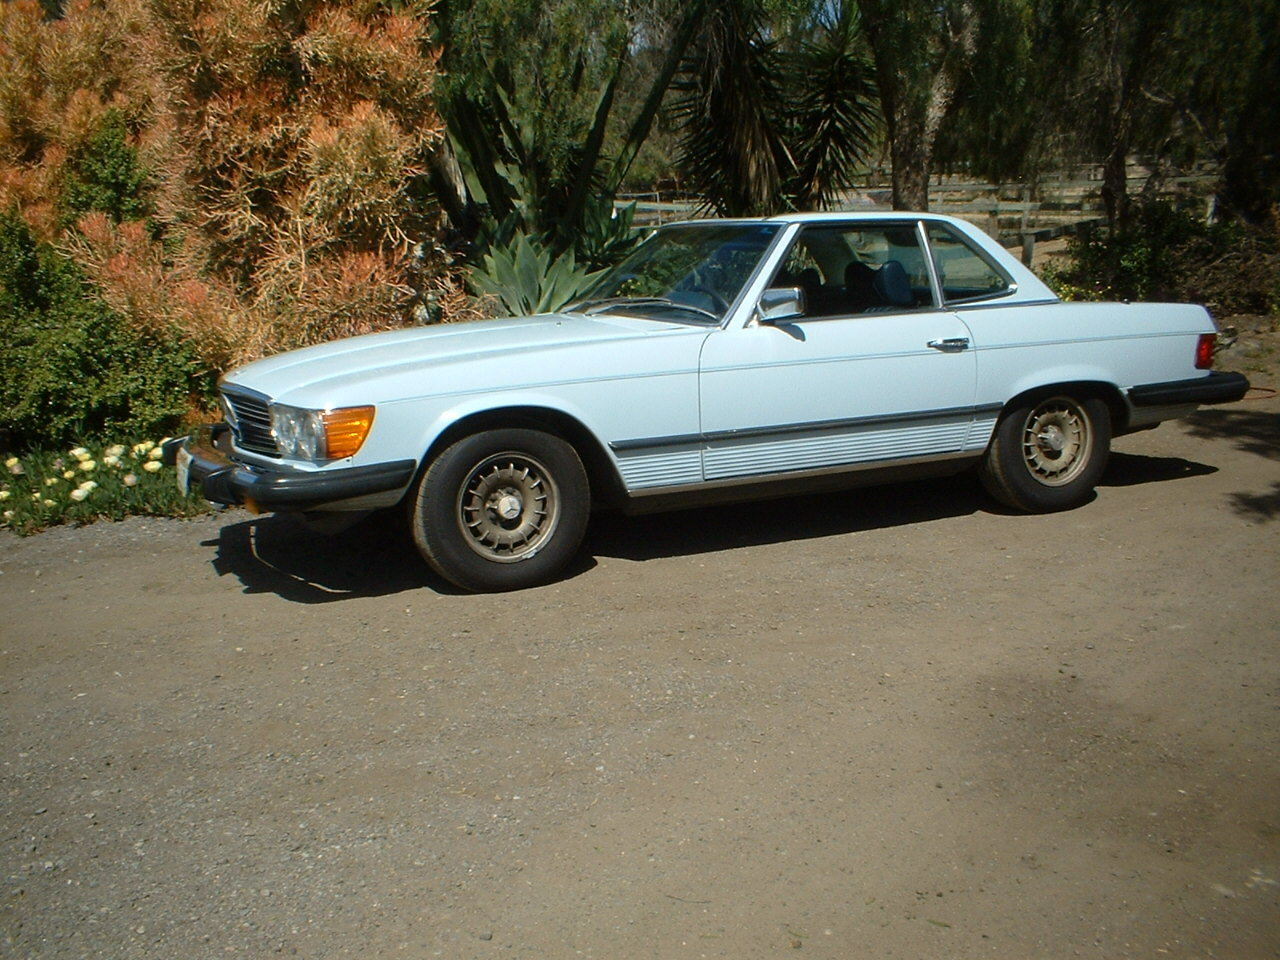 Picture of 1979 original California car - last of the real MBZ For Sale